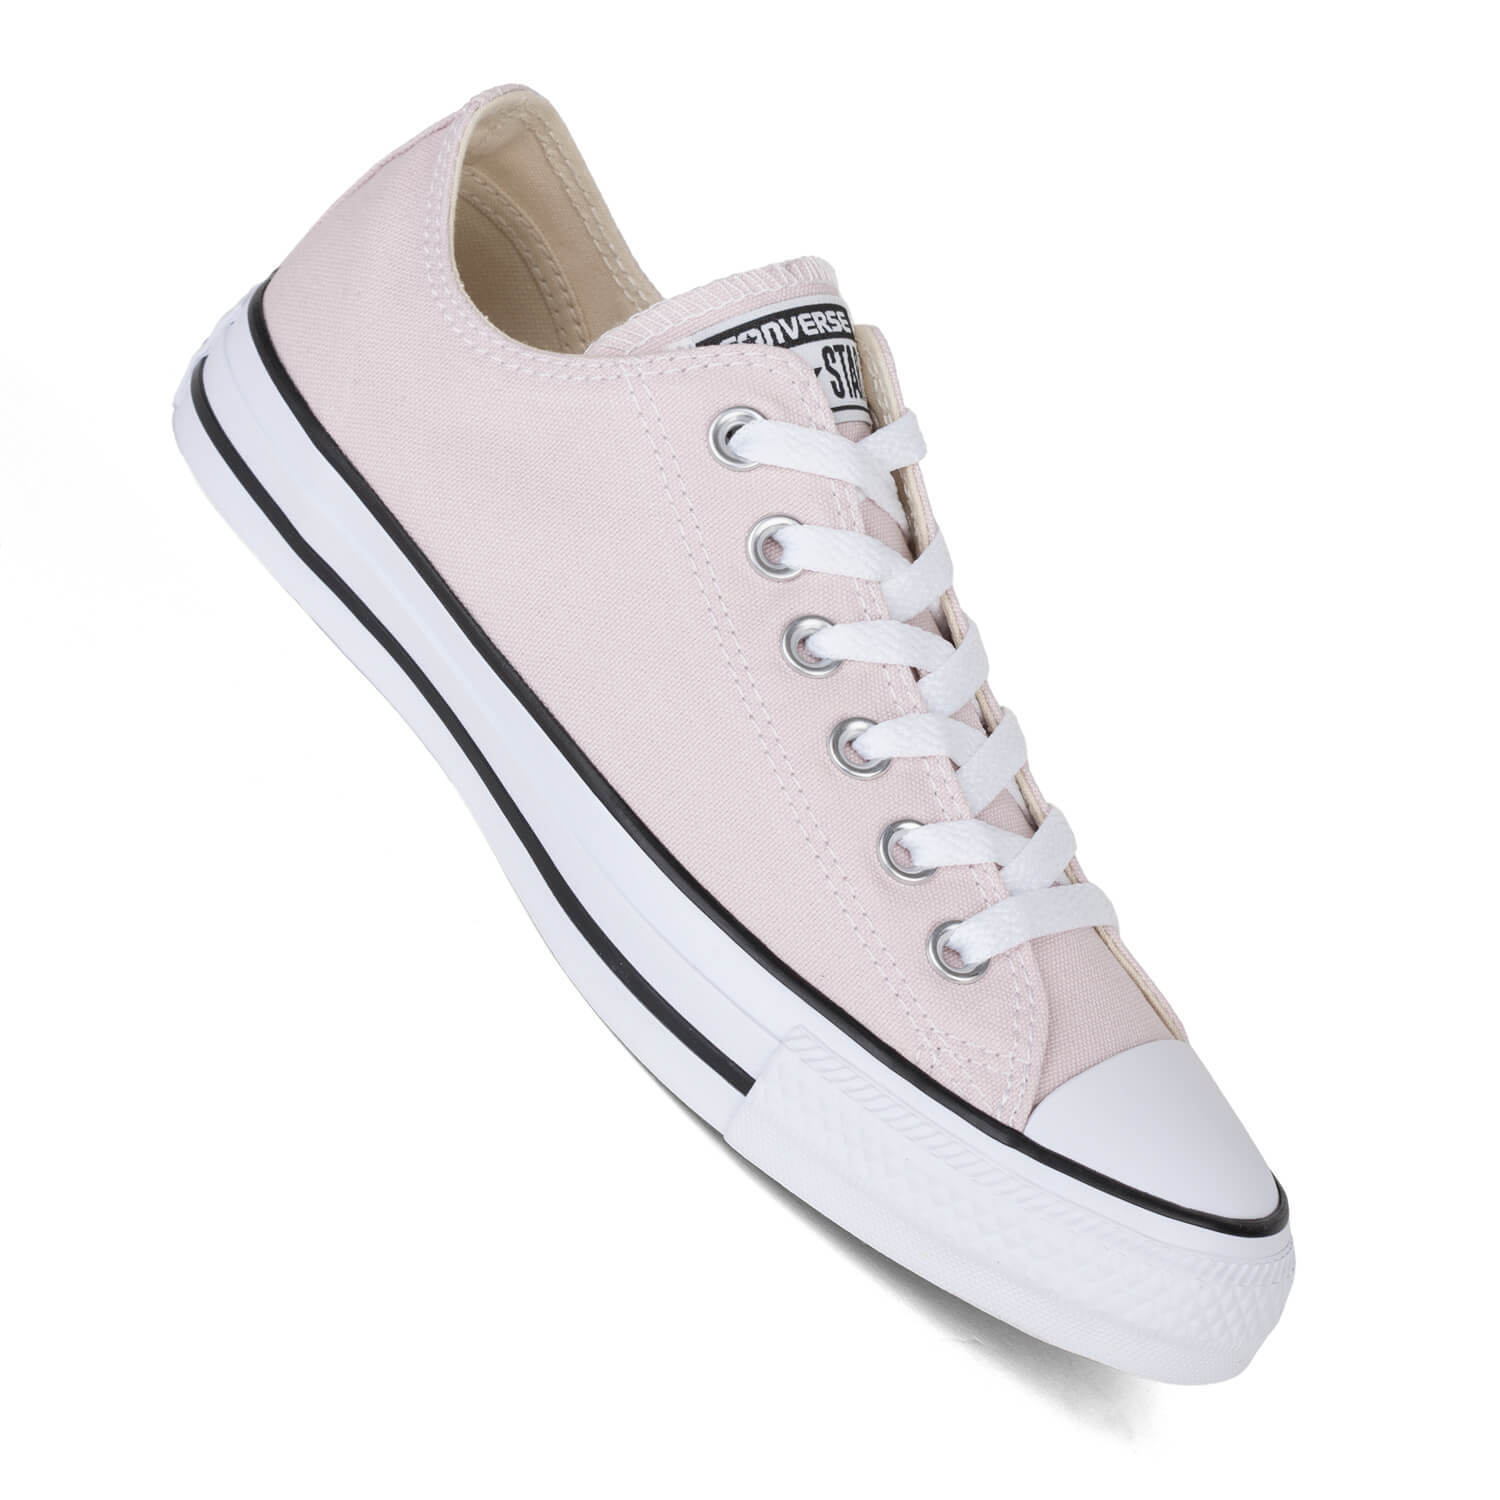 Converse Chucks Lo CTAS OX barely rose Damen Sneaker in zartem rosa